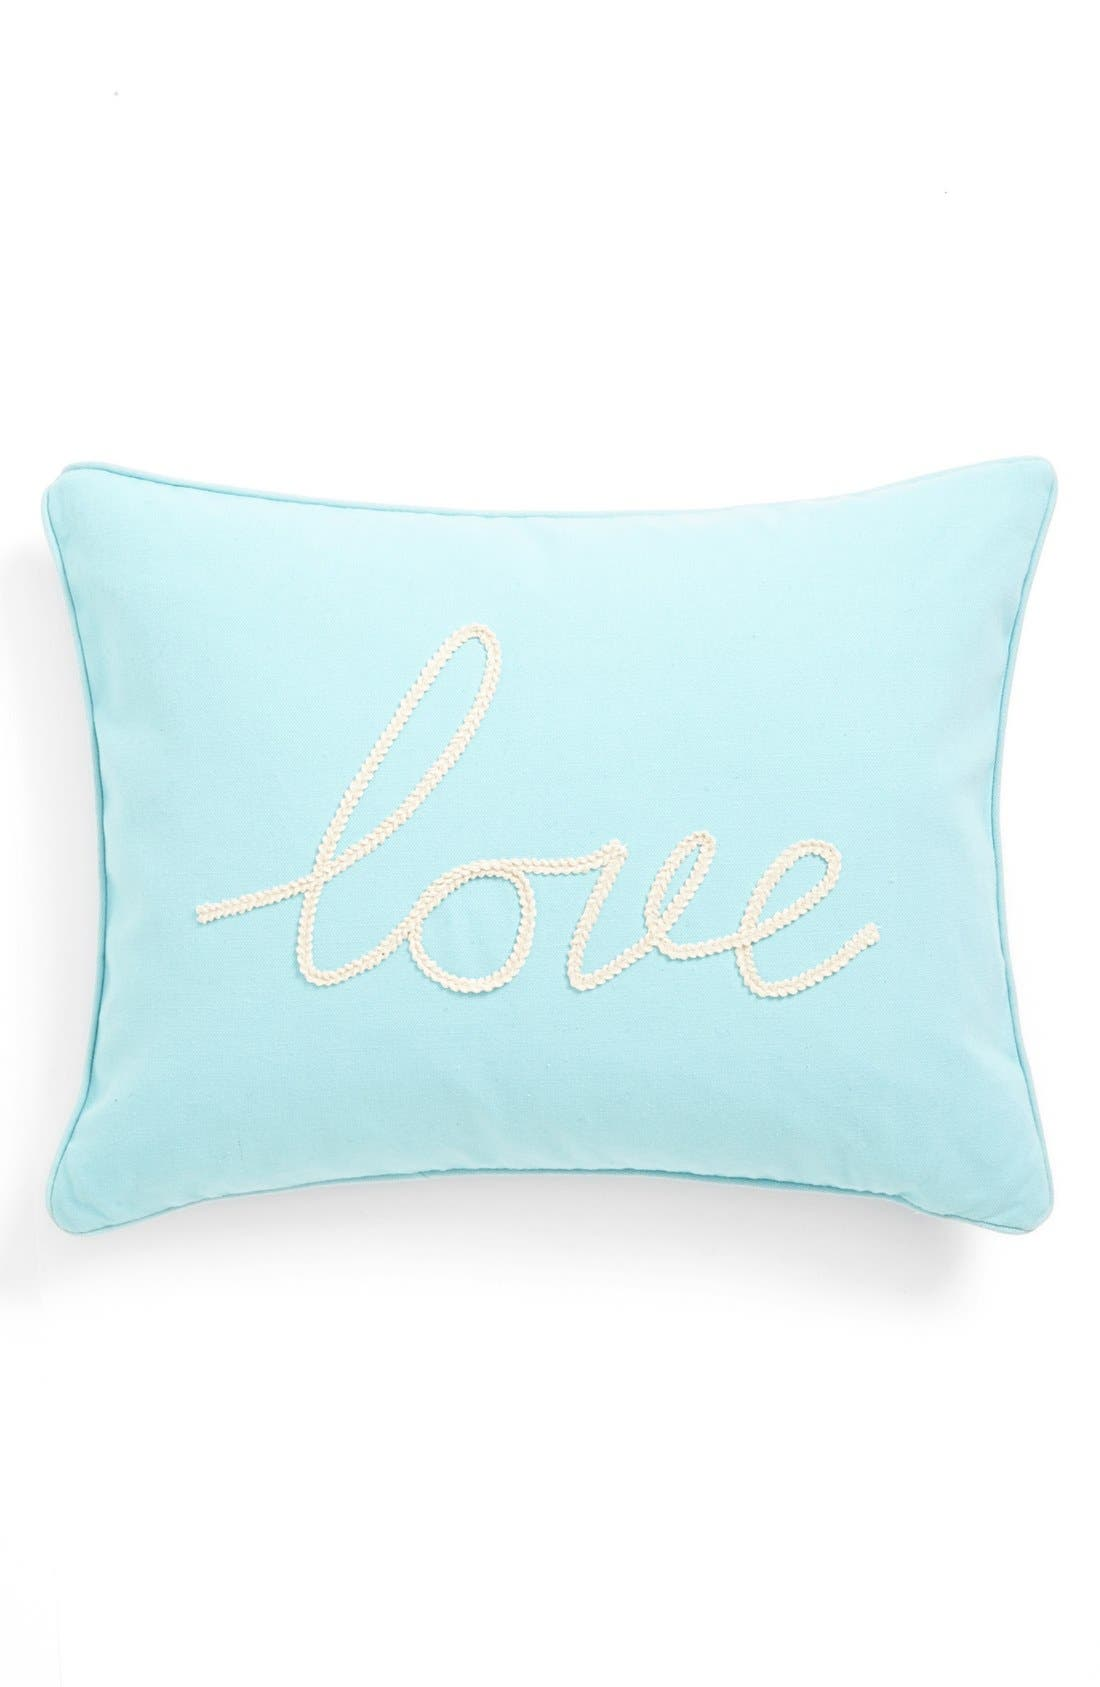 Main Image - Nordstrom at Home 'Love' Pillow